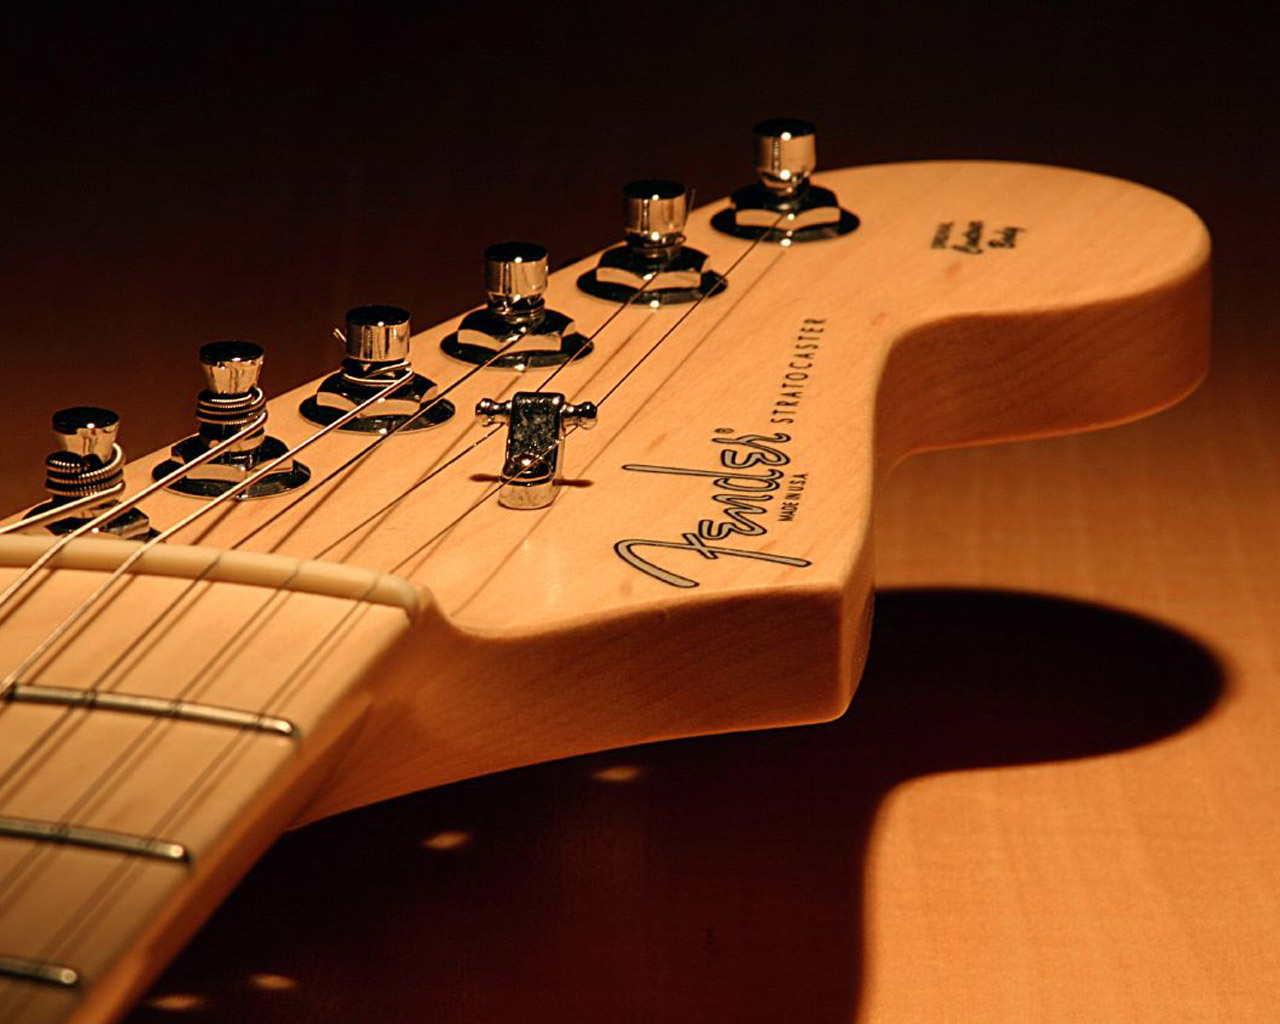 Fender Guitar Wallpapers For Desktop Images amp Pictures   Becuo 1280x1024